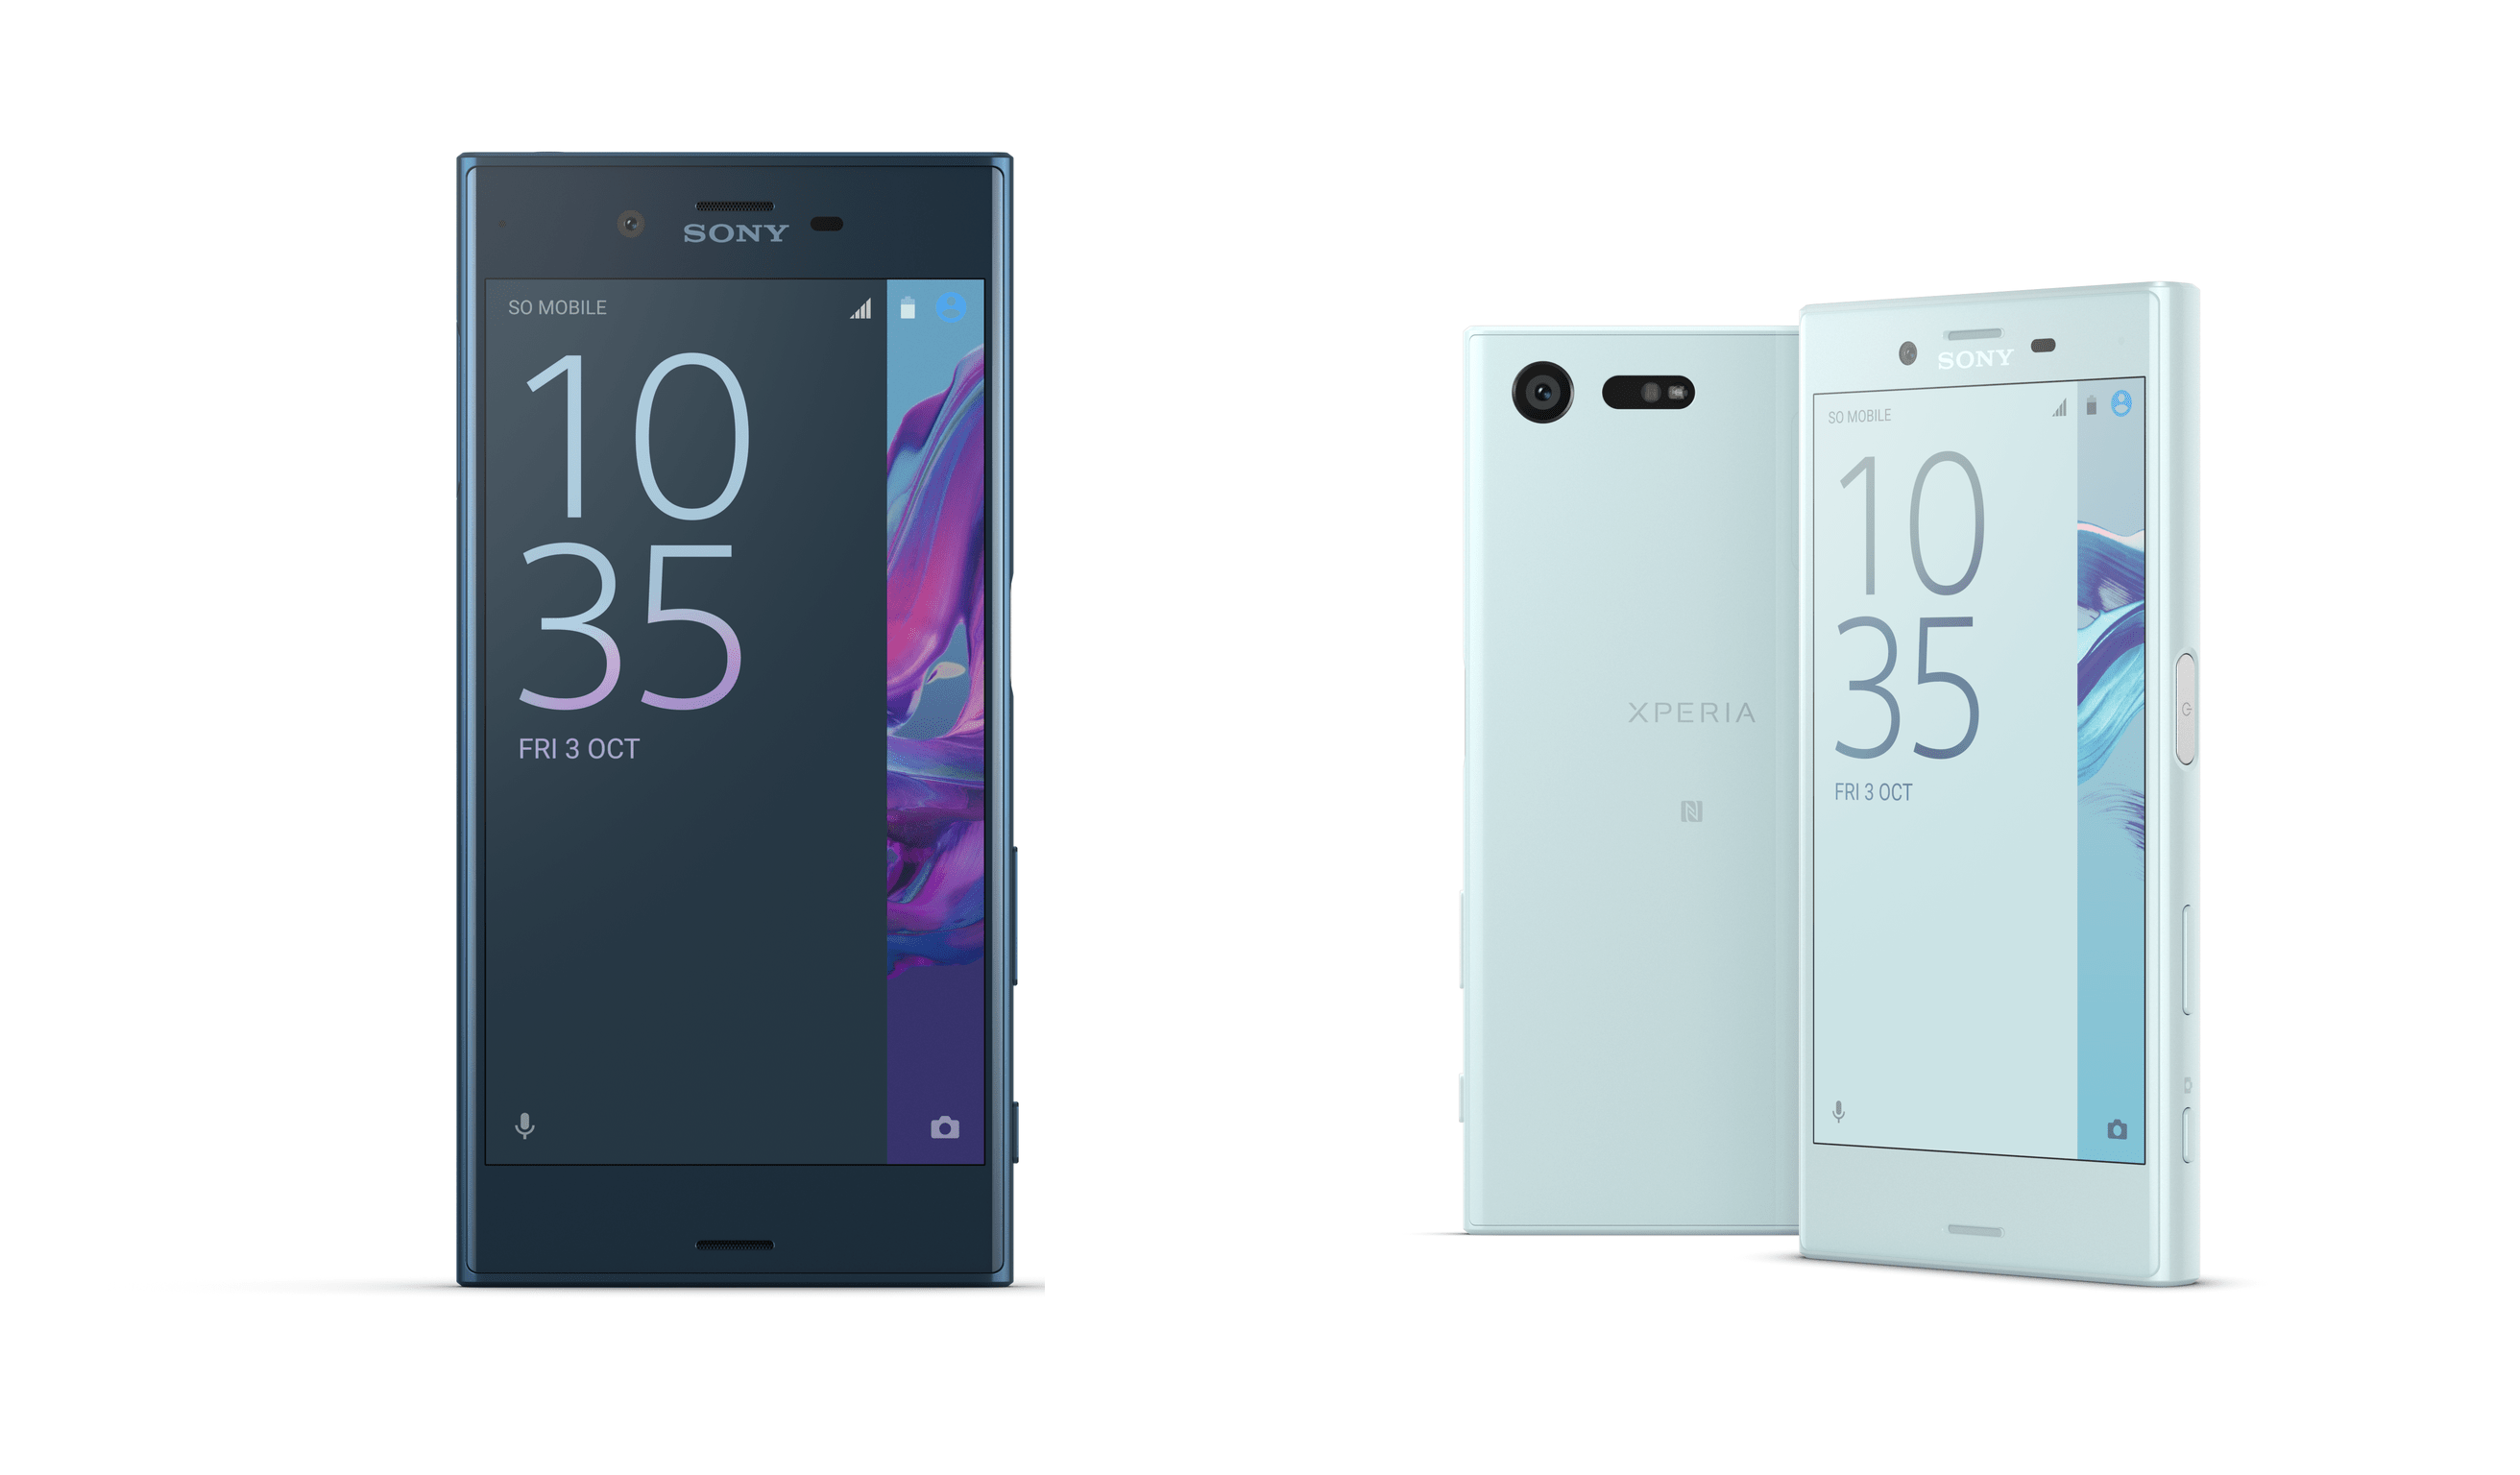 Sony Phone On Amazon Sony Xperia X Compact Now Available On Amazon Xperia Xz Up